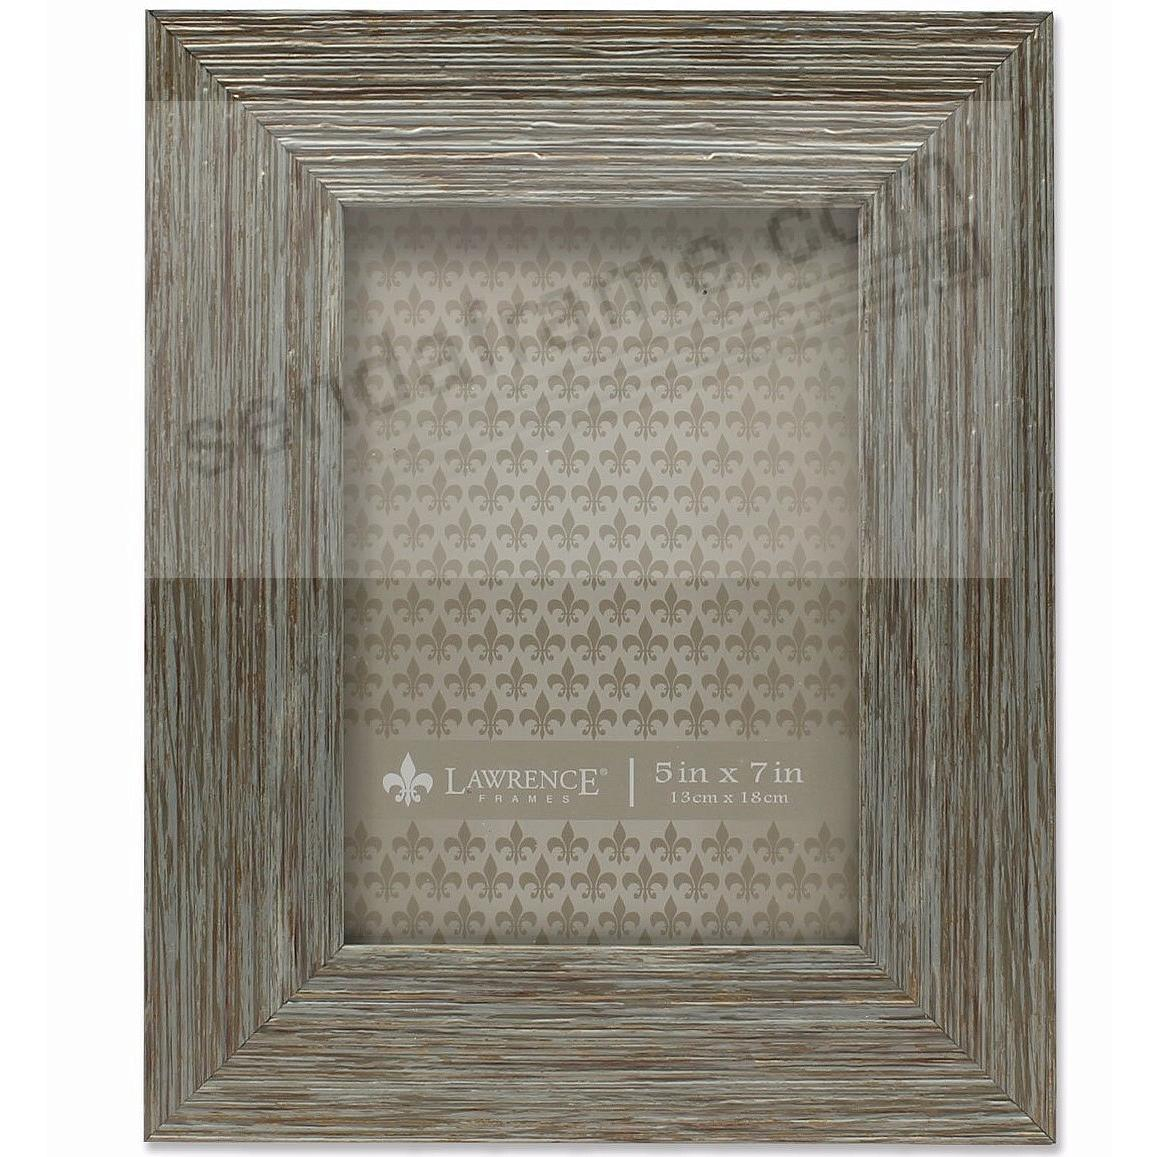 Weathered Blue/Grey Wood 5x7 Frame by Lawrence®